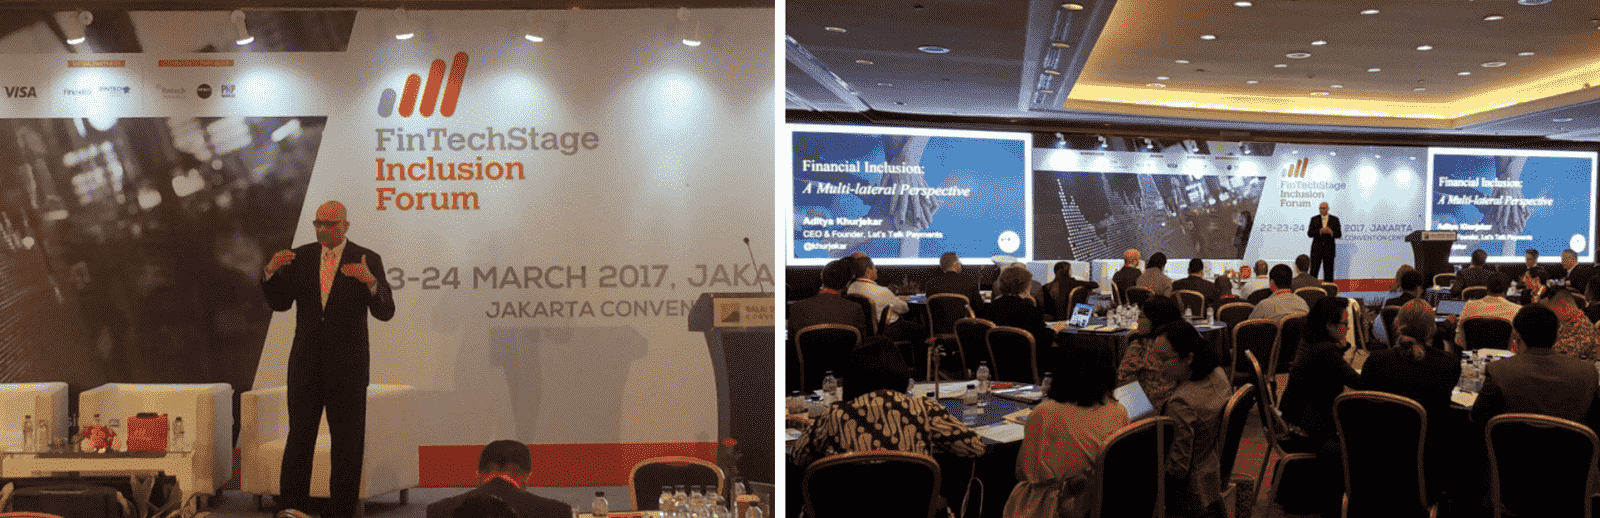 FinTechStage in Partnership with LTP Invites Innovators to the Most Relevant, Hyper-Connected, and Tech-Savvy FinTech Event in Milan